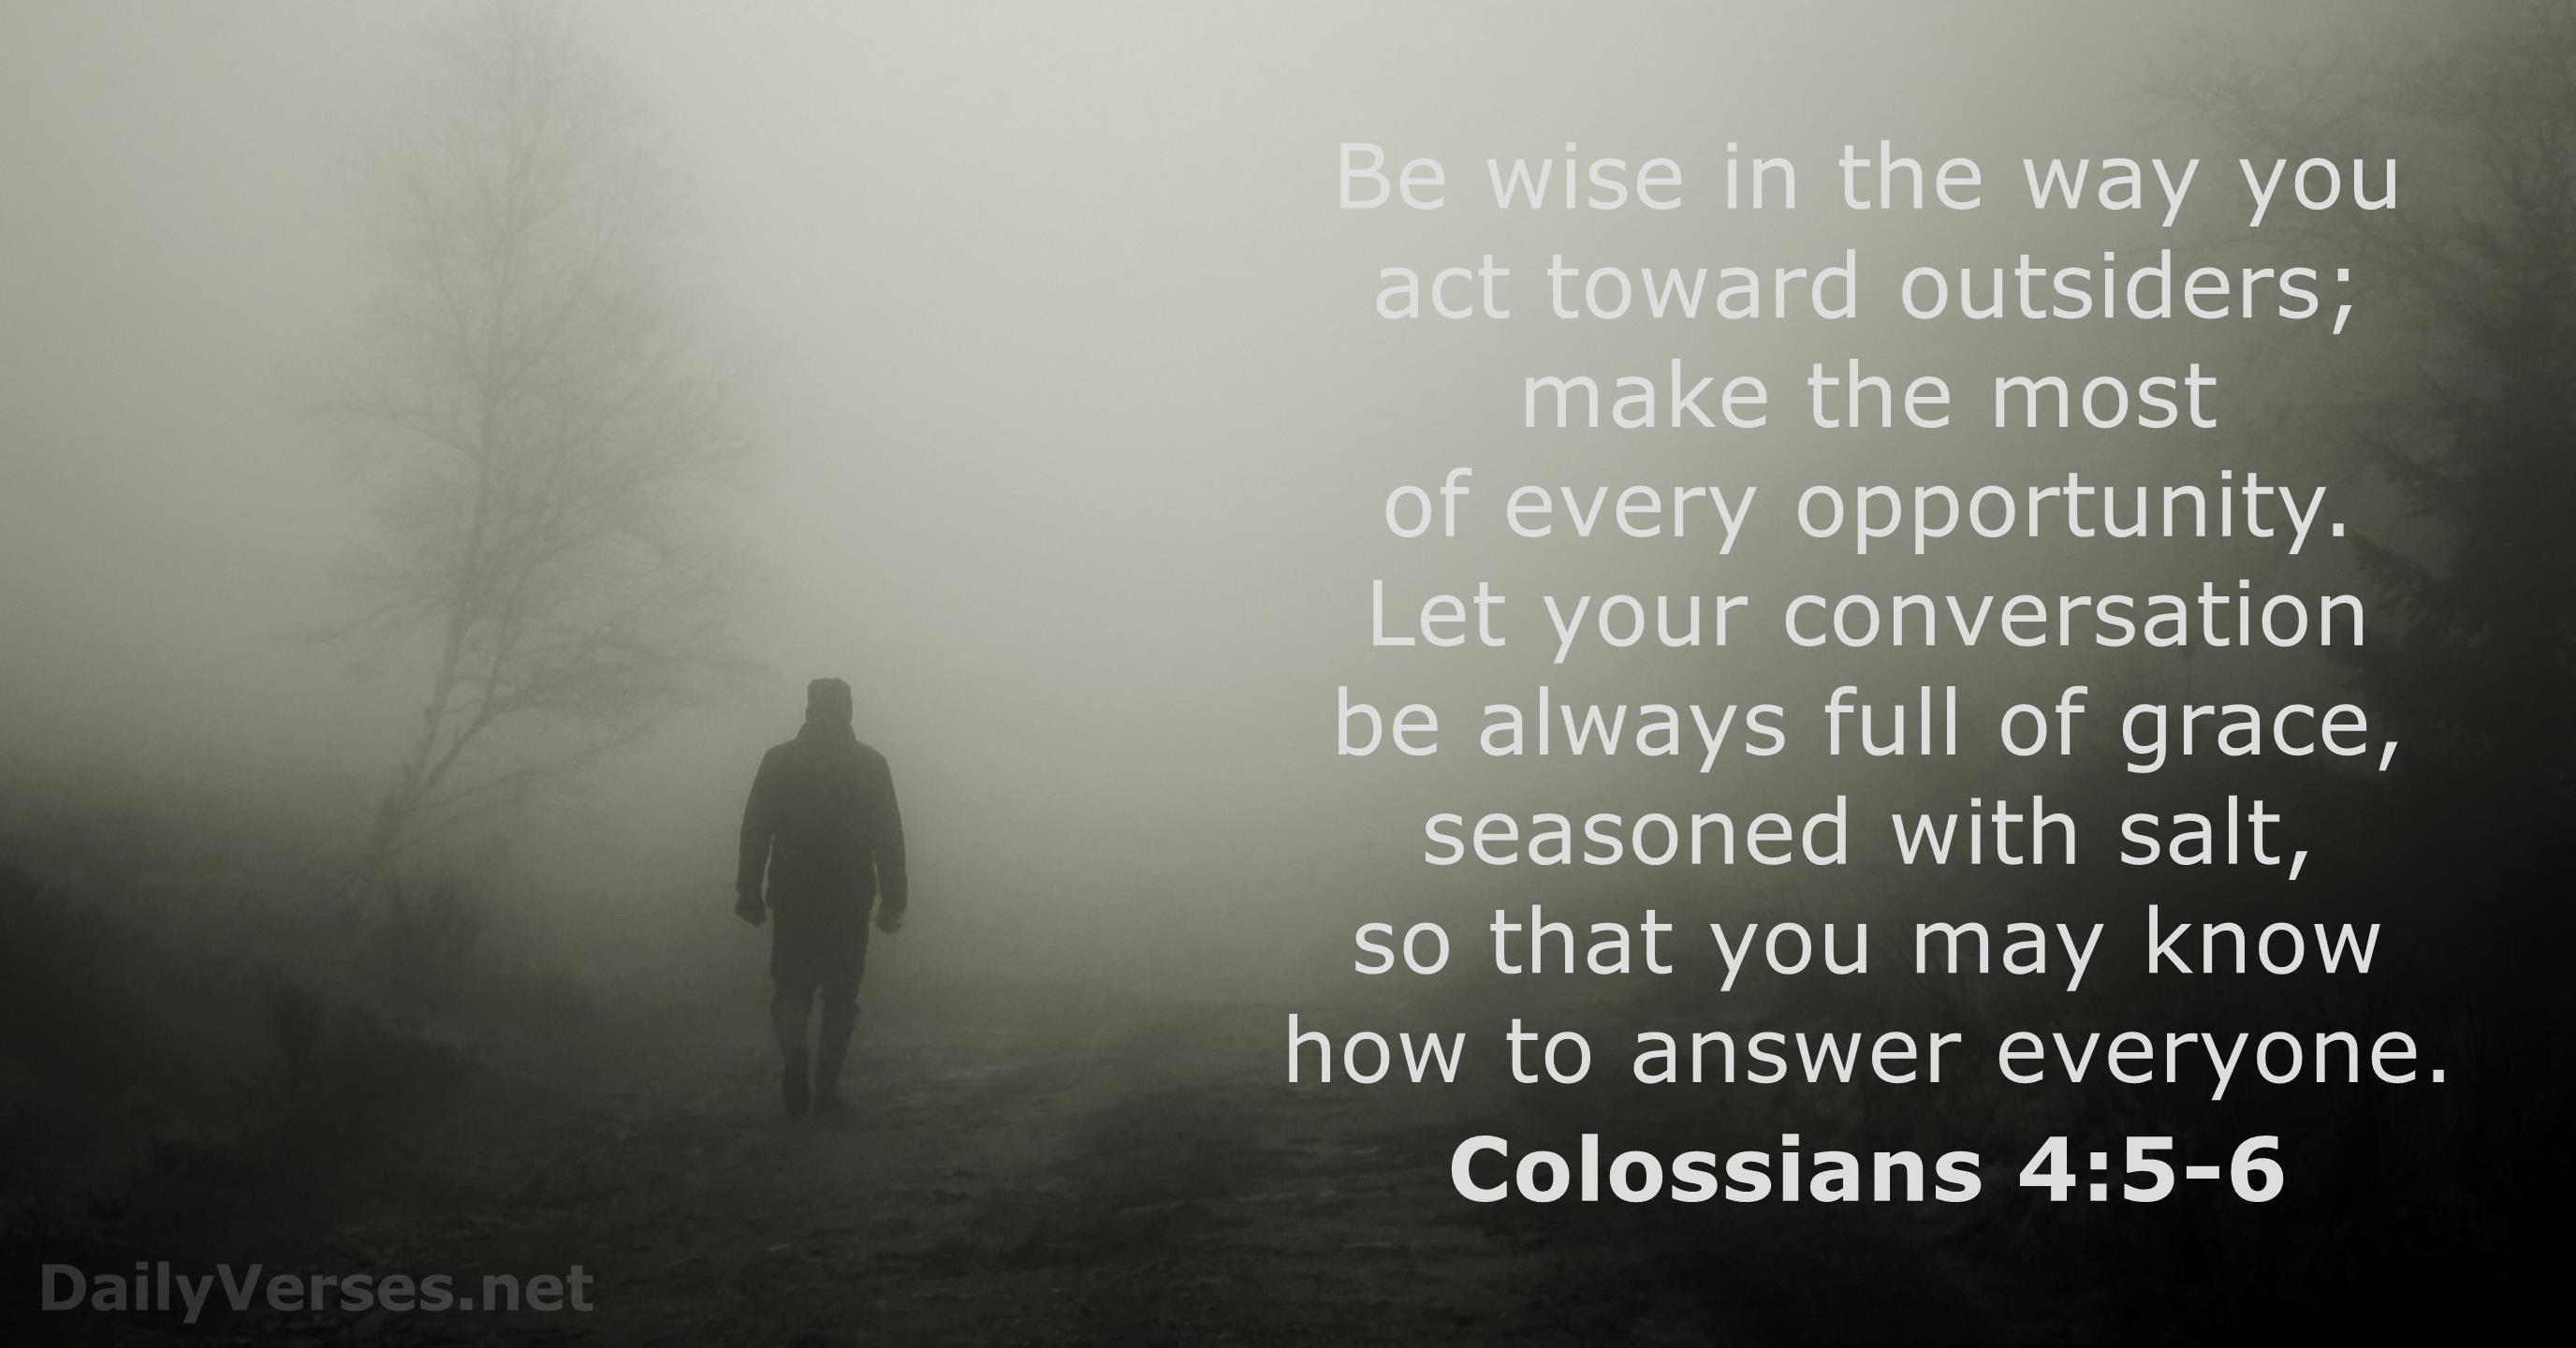 May 2, 2015 - Bible verse of the day - Colossians 4:5-6